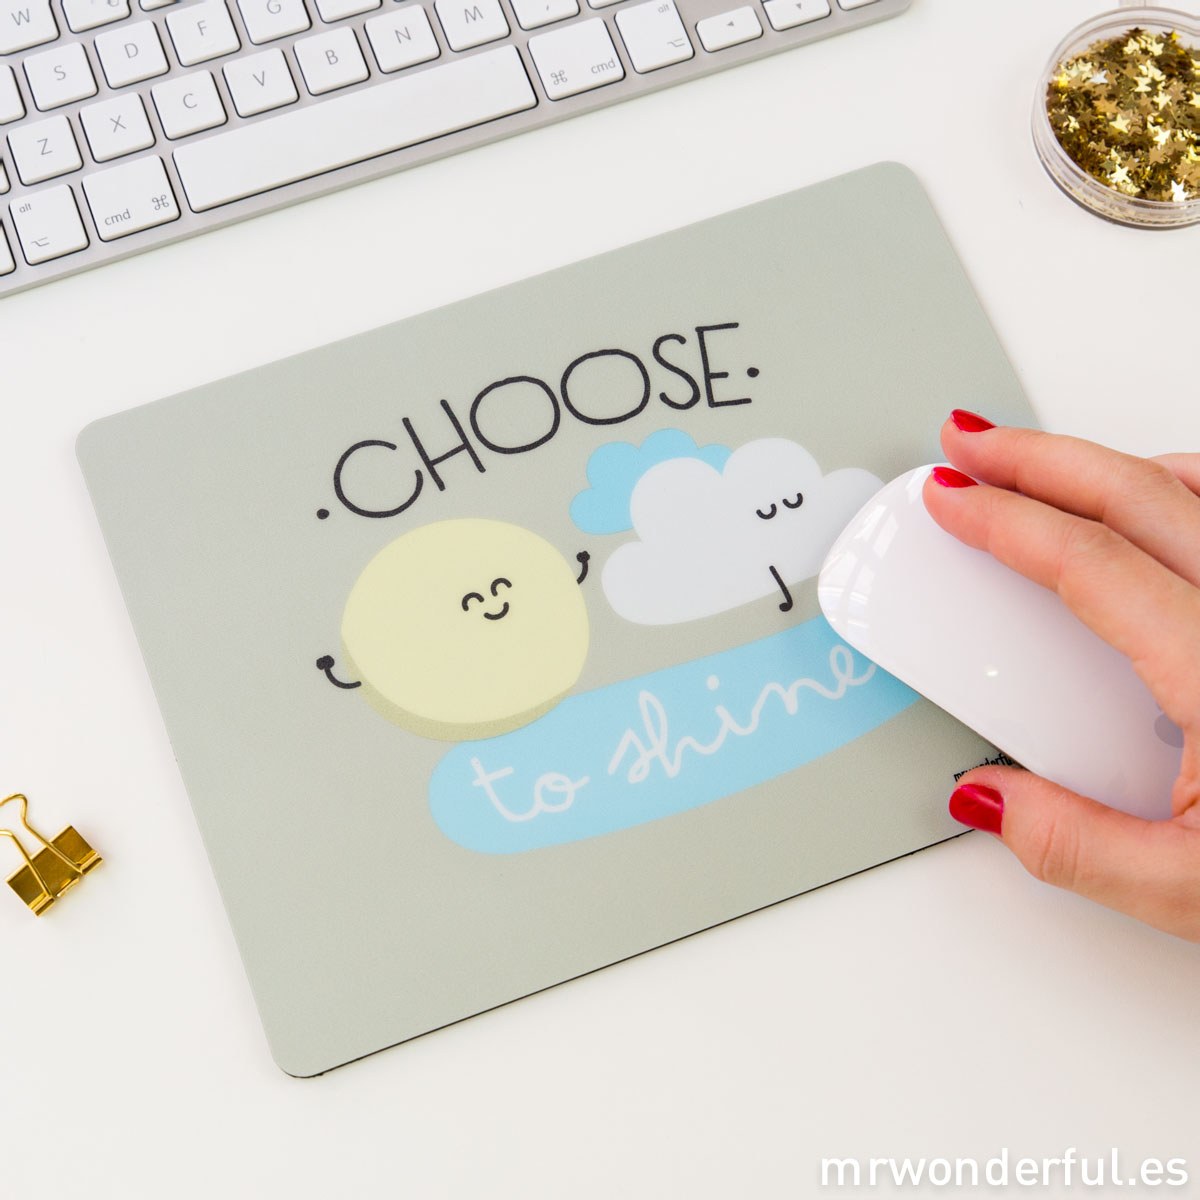 mrwonderful_ALF12A_alfombrilla_summer_choose-the-shine-14